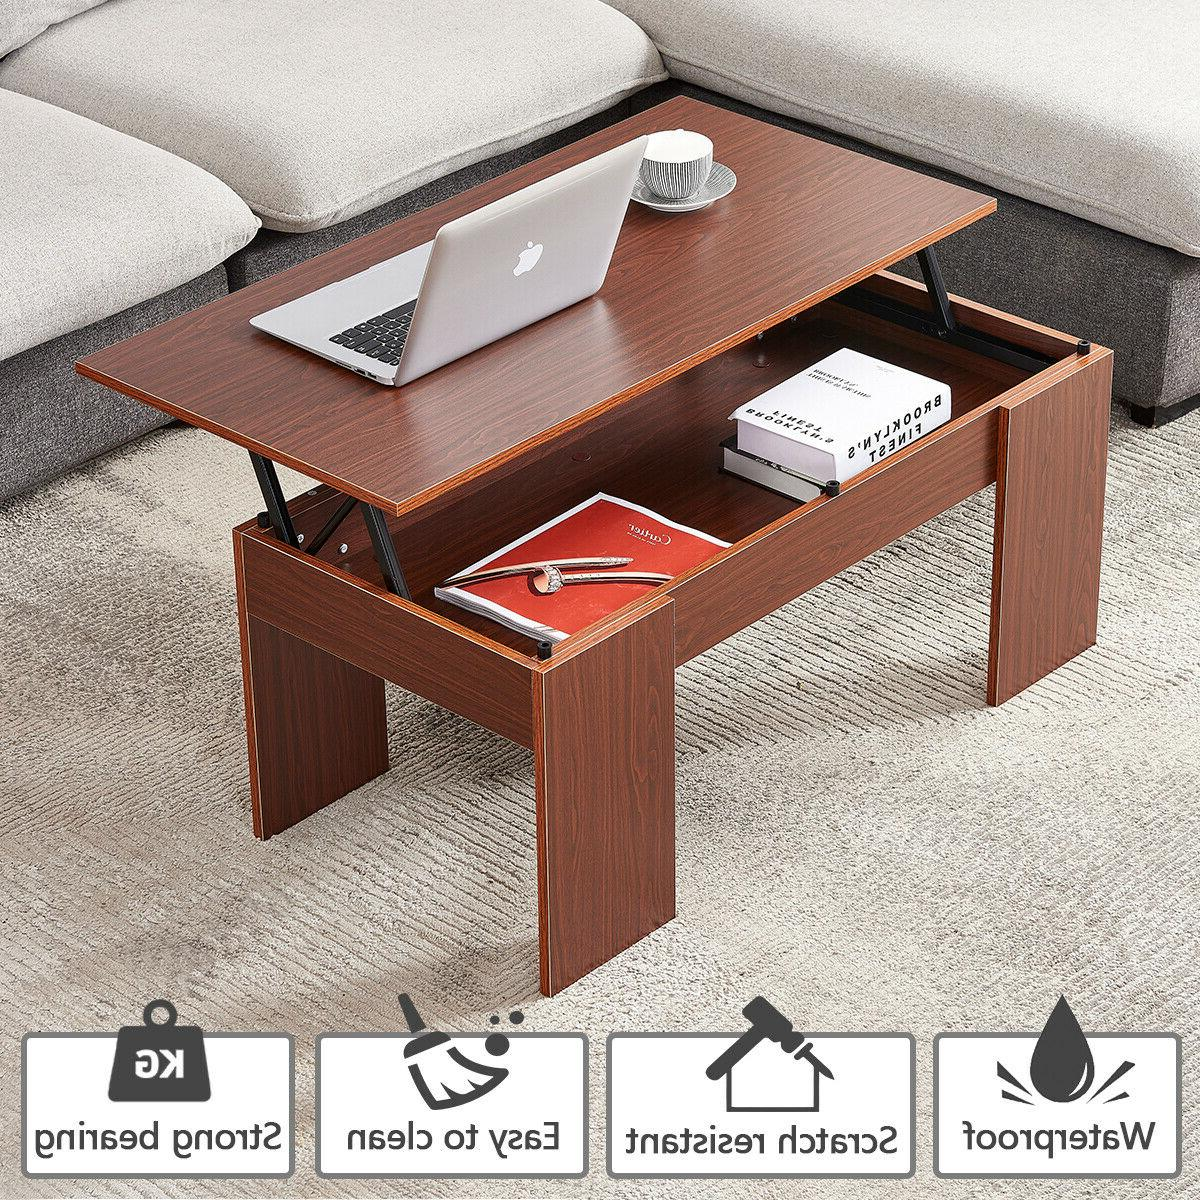 Modern Lift Top Coffee Table w/ Hidden Compartment Storage L